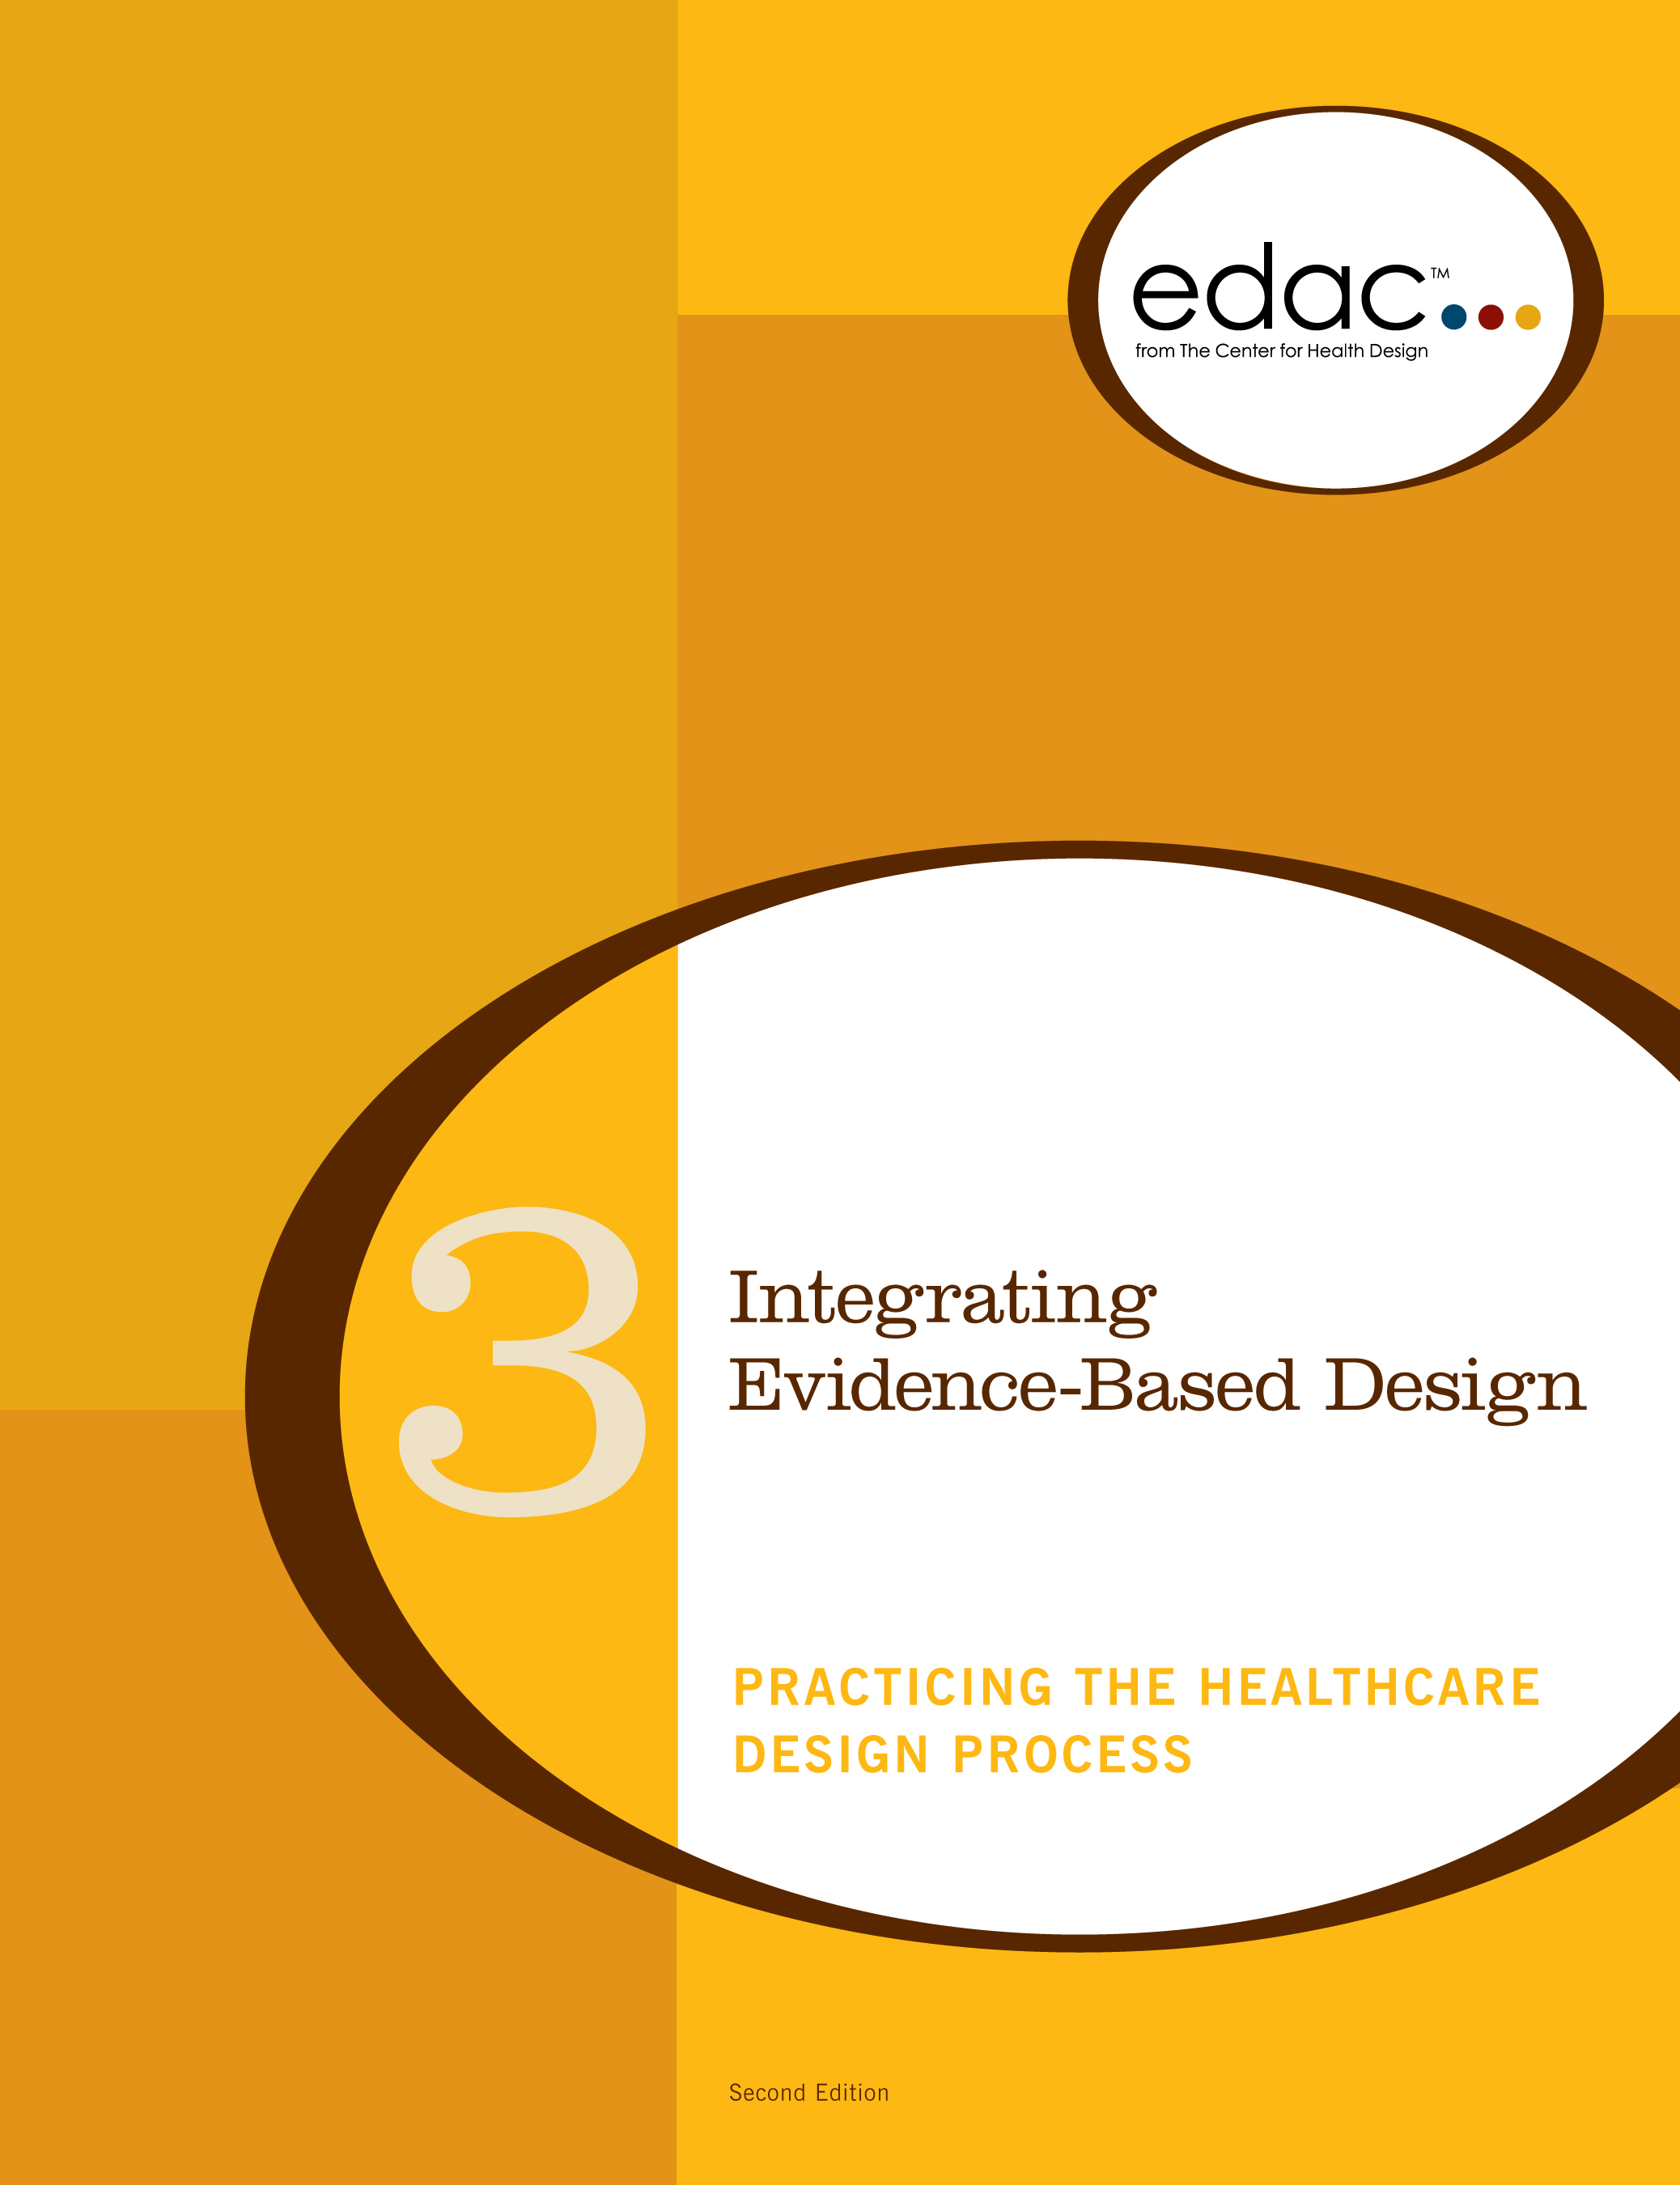 Study Guide 3 Edac Study Guide Volume 3 3rd Edition The Center For Health Design